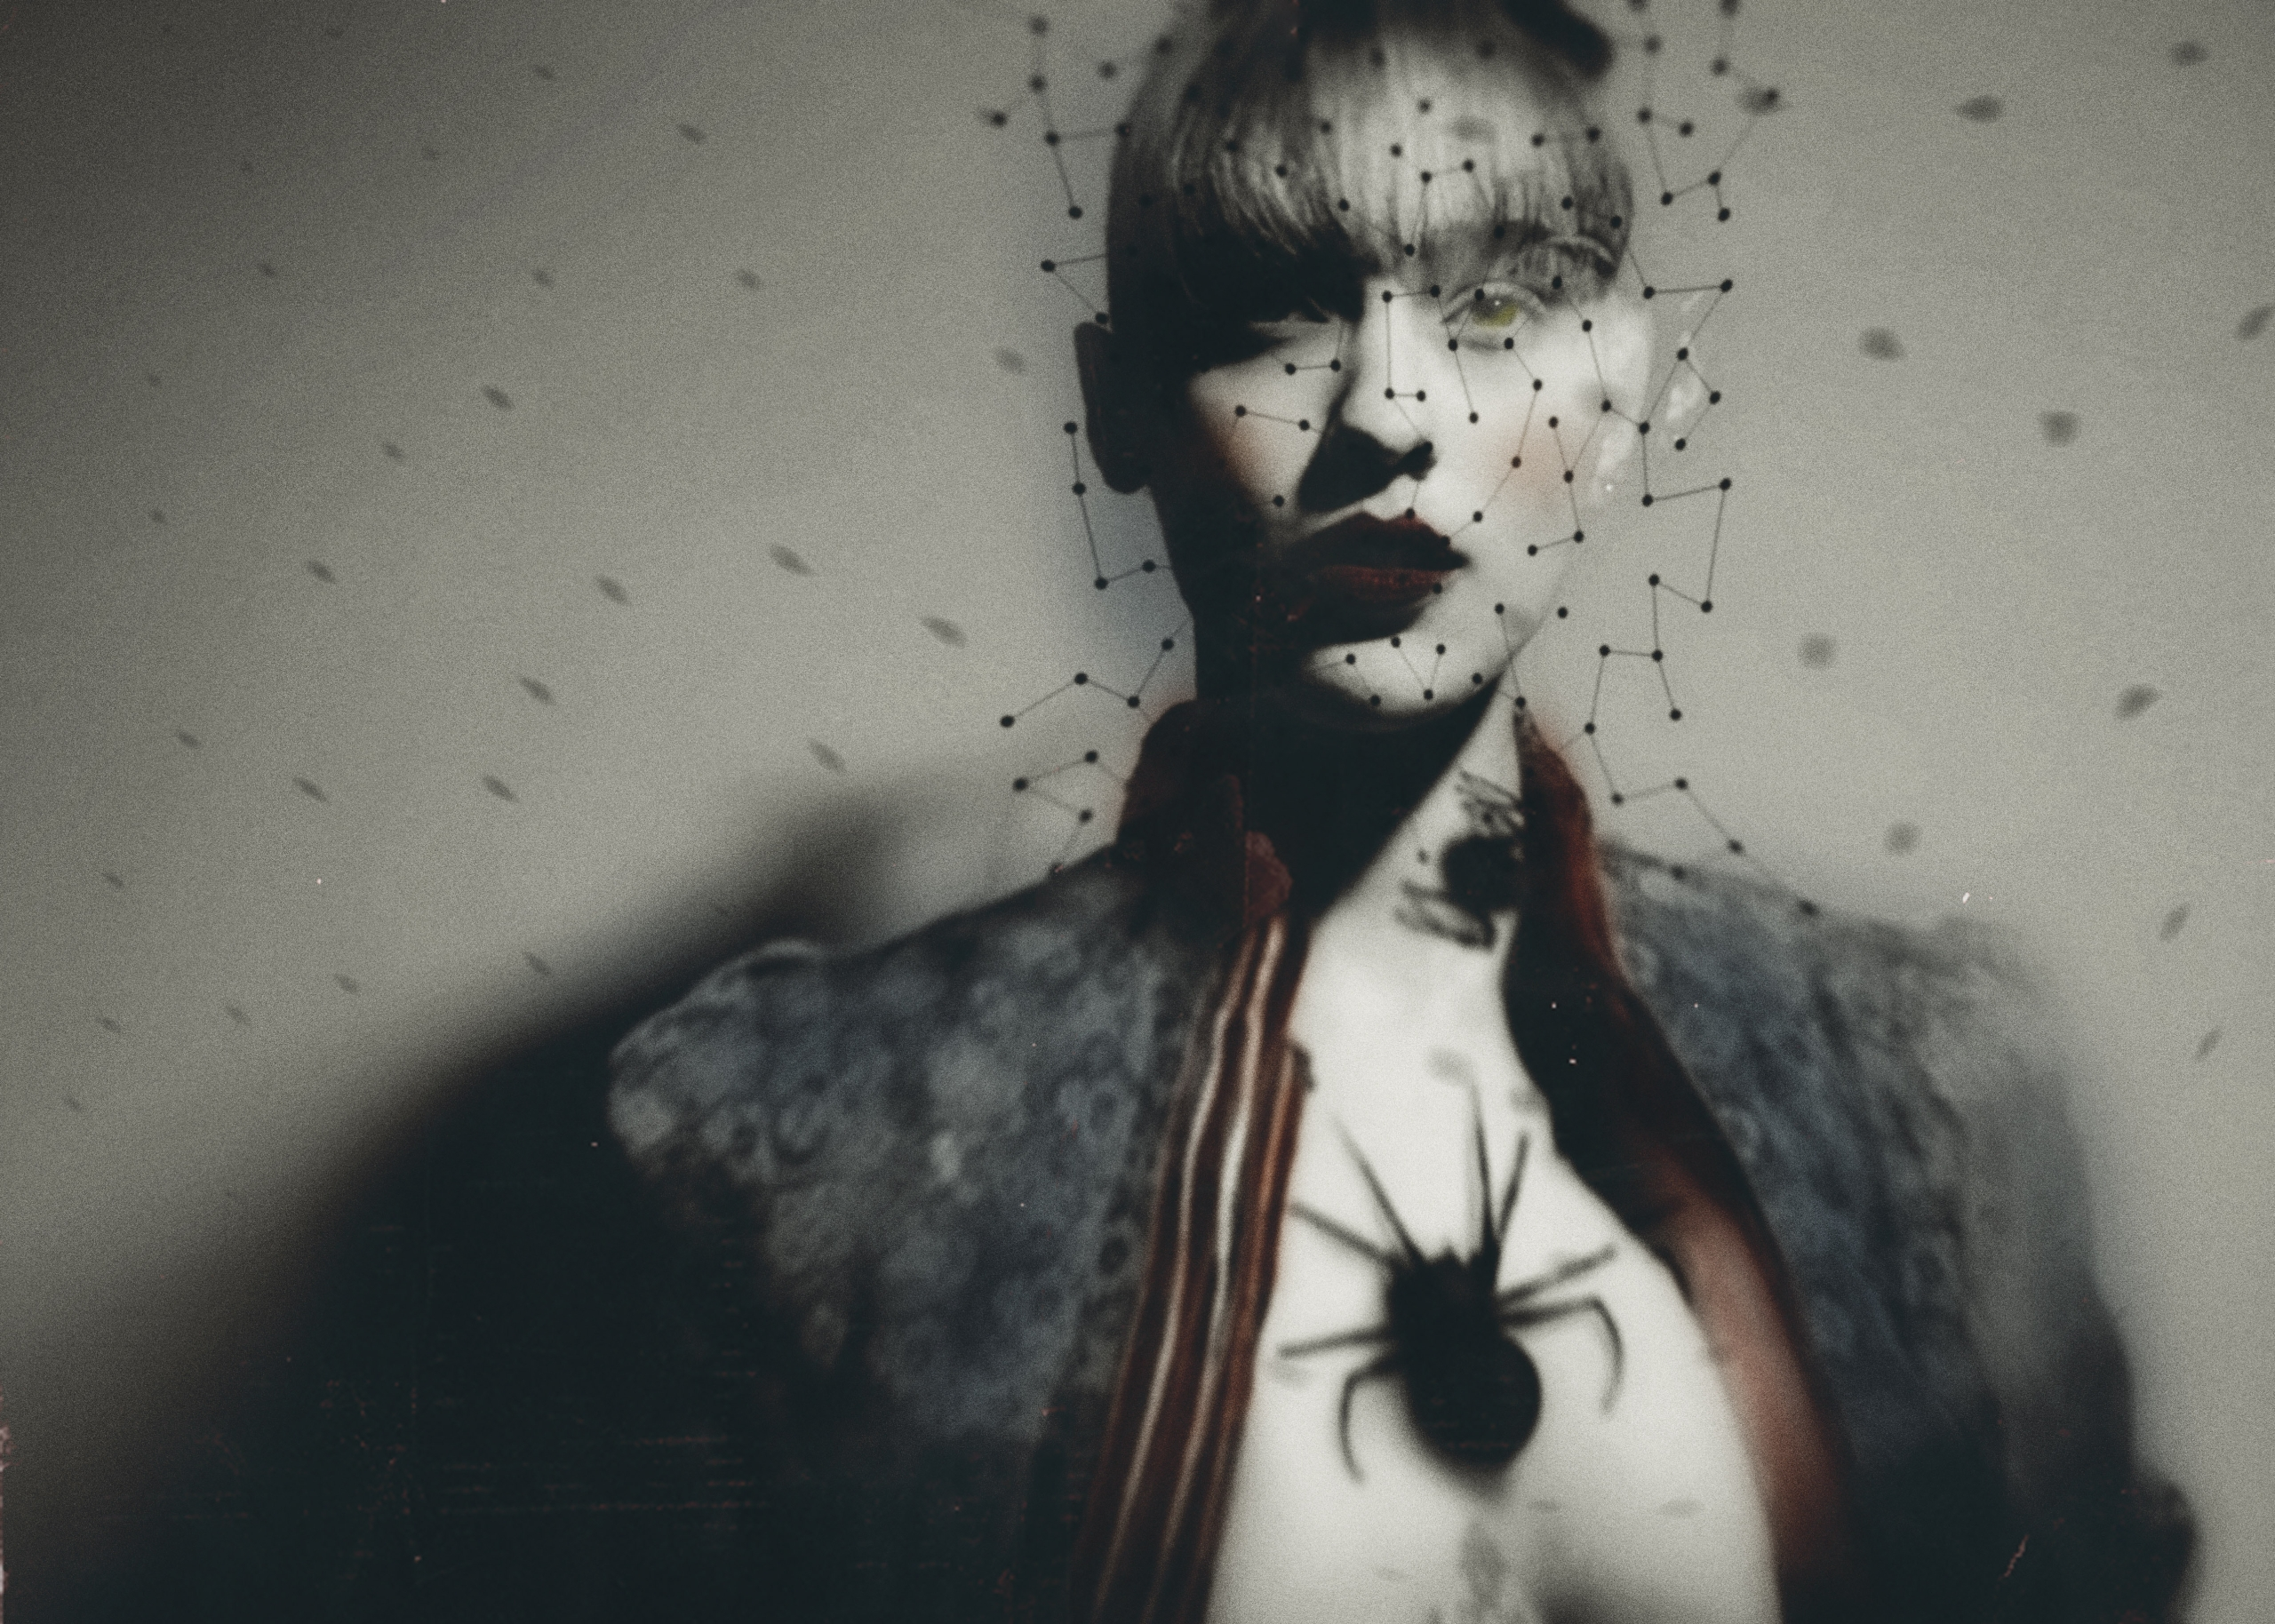 Escape black widow spider mirac - cardinphotography | ello